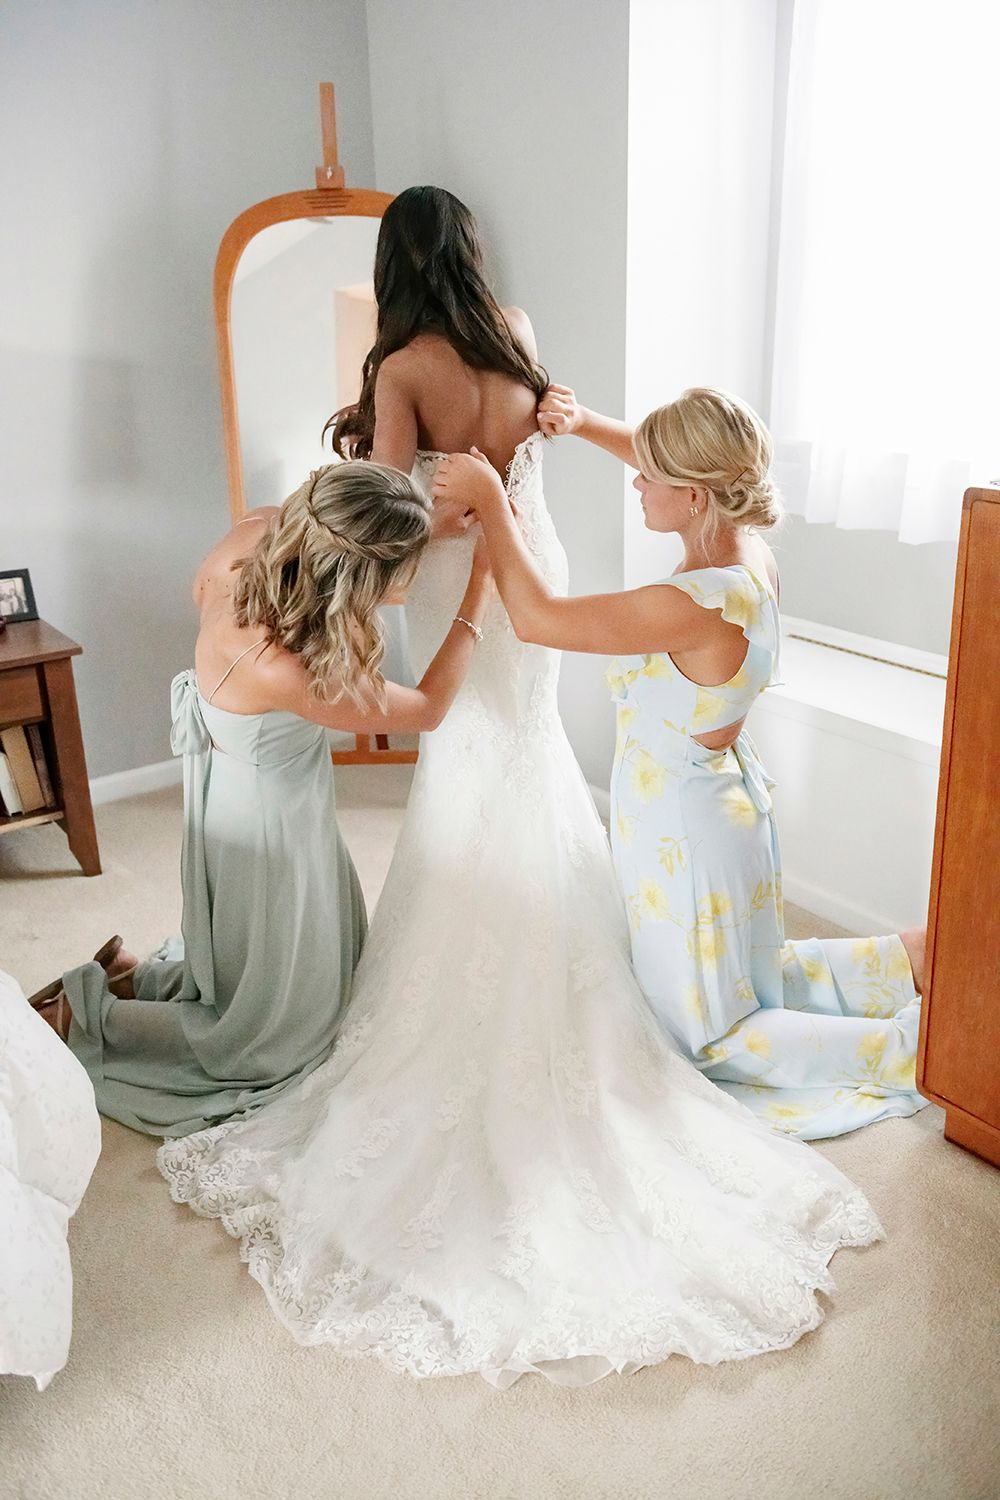 girls buttoning the bride's dress